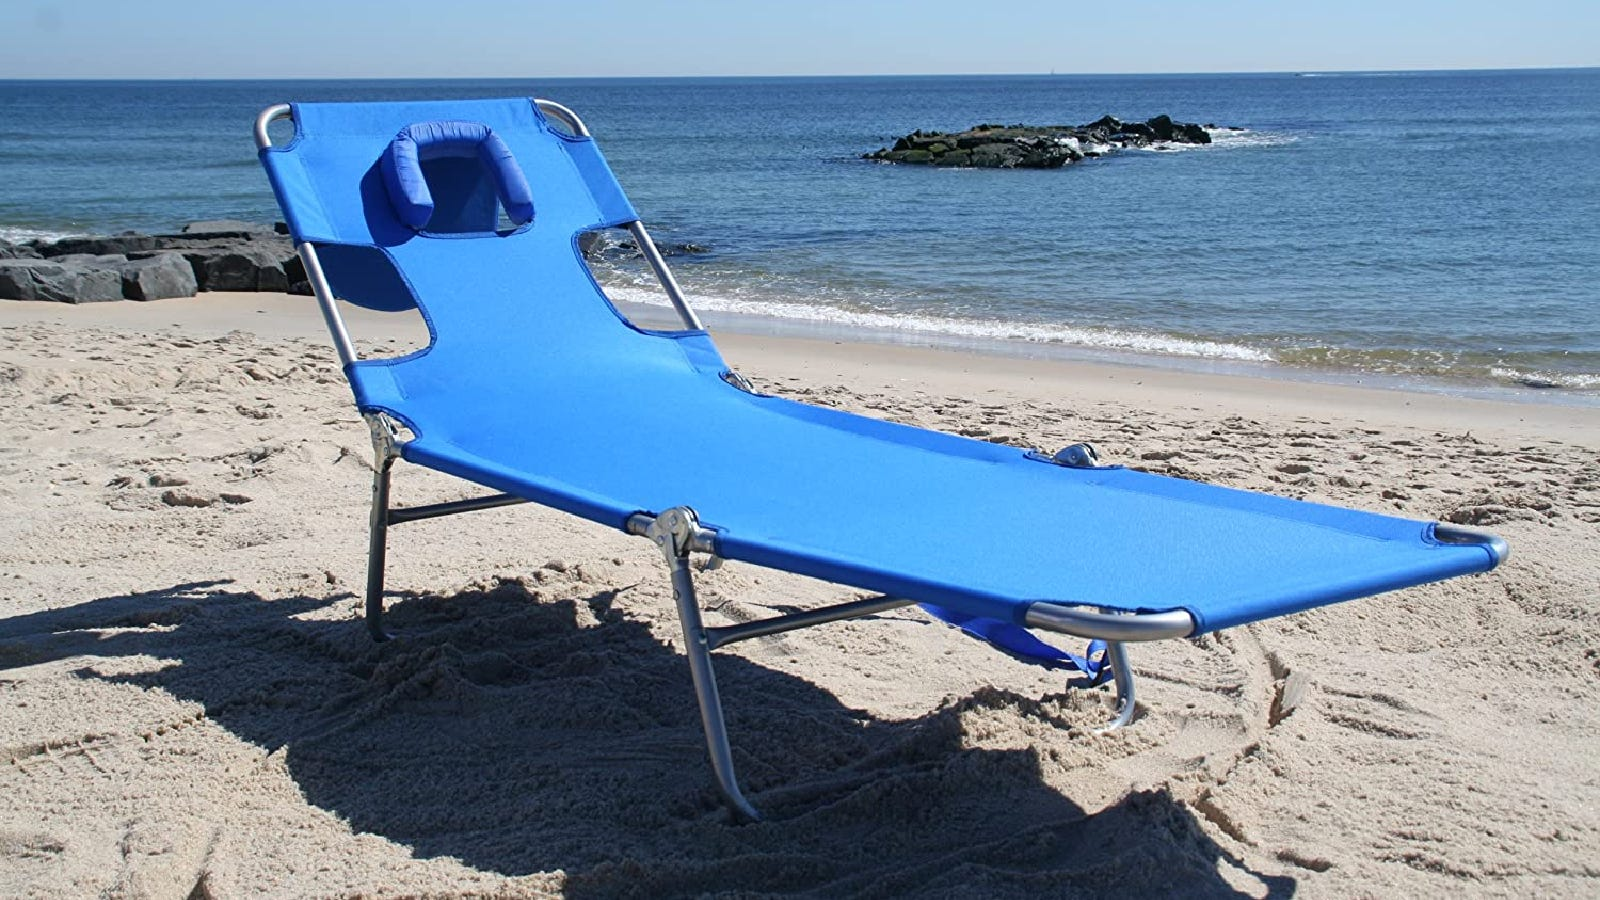 a blue chaise lounger chair with silver bars resting on the beach